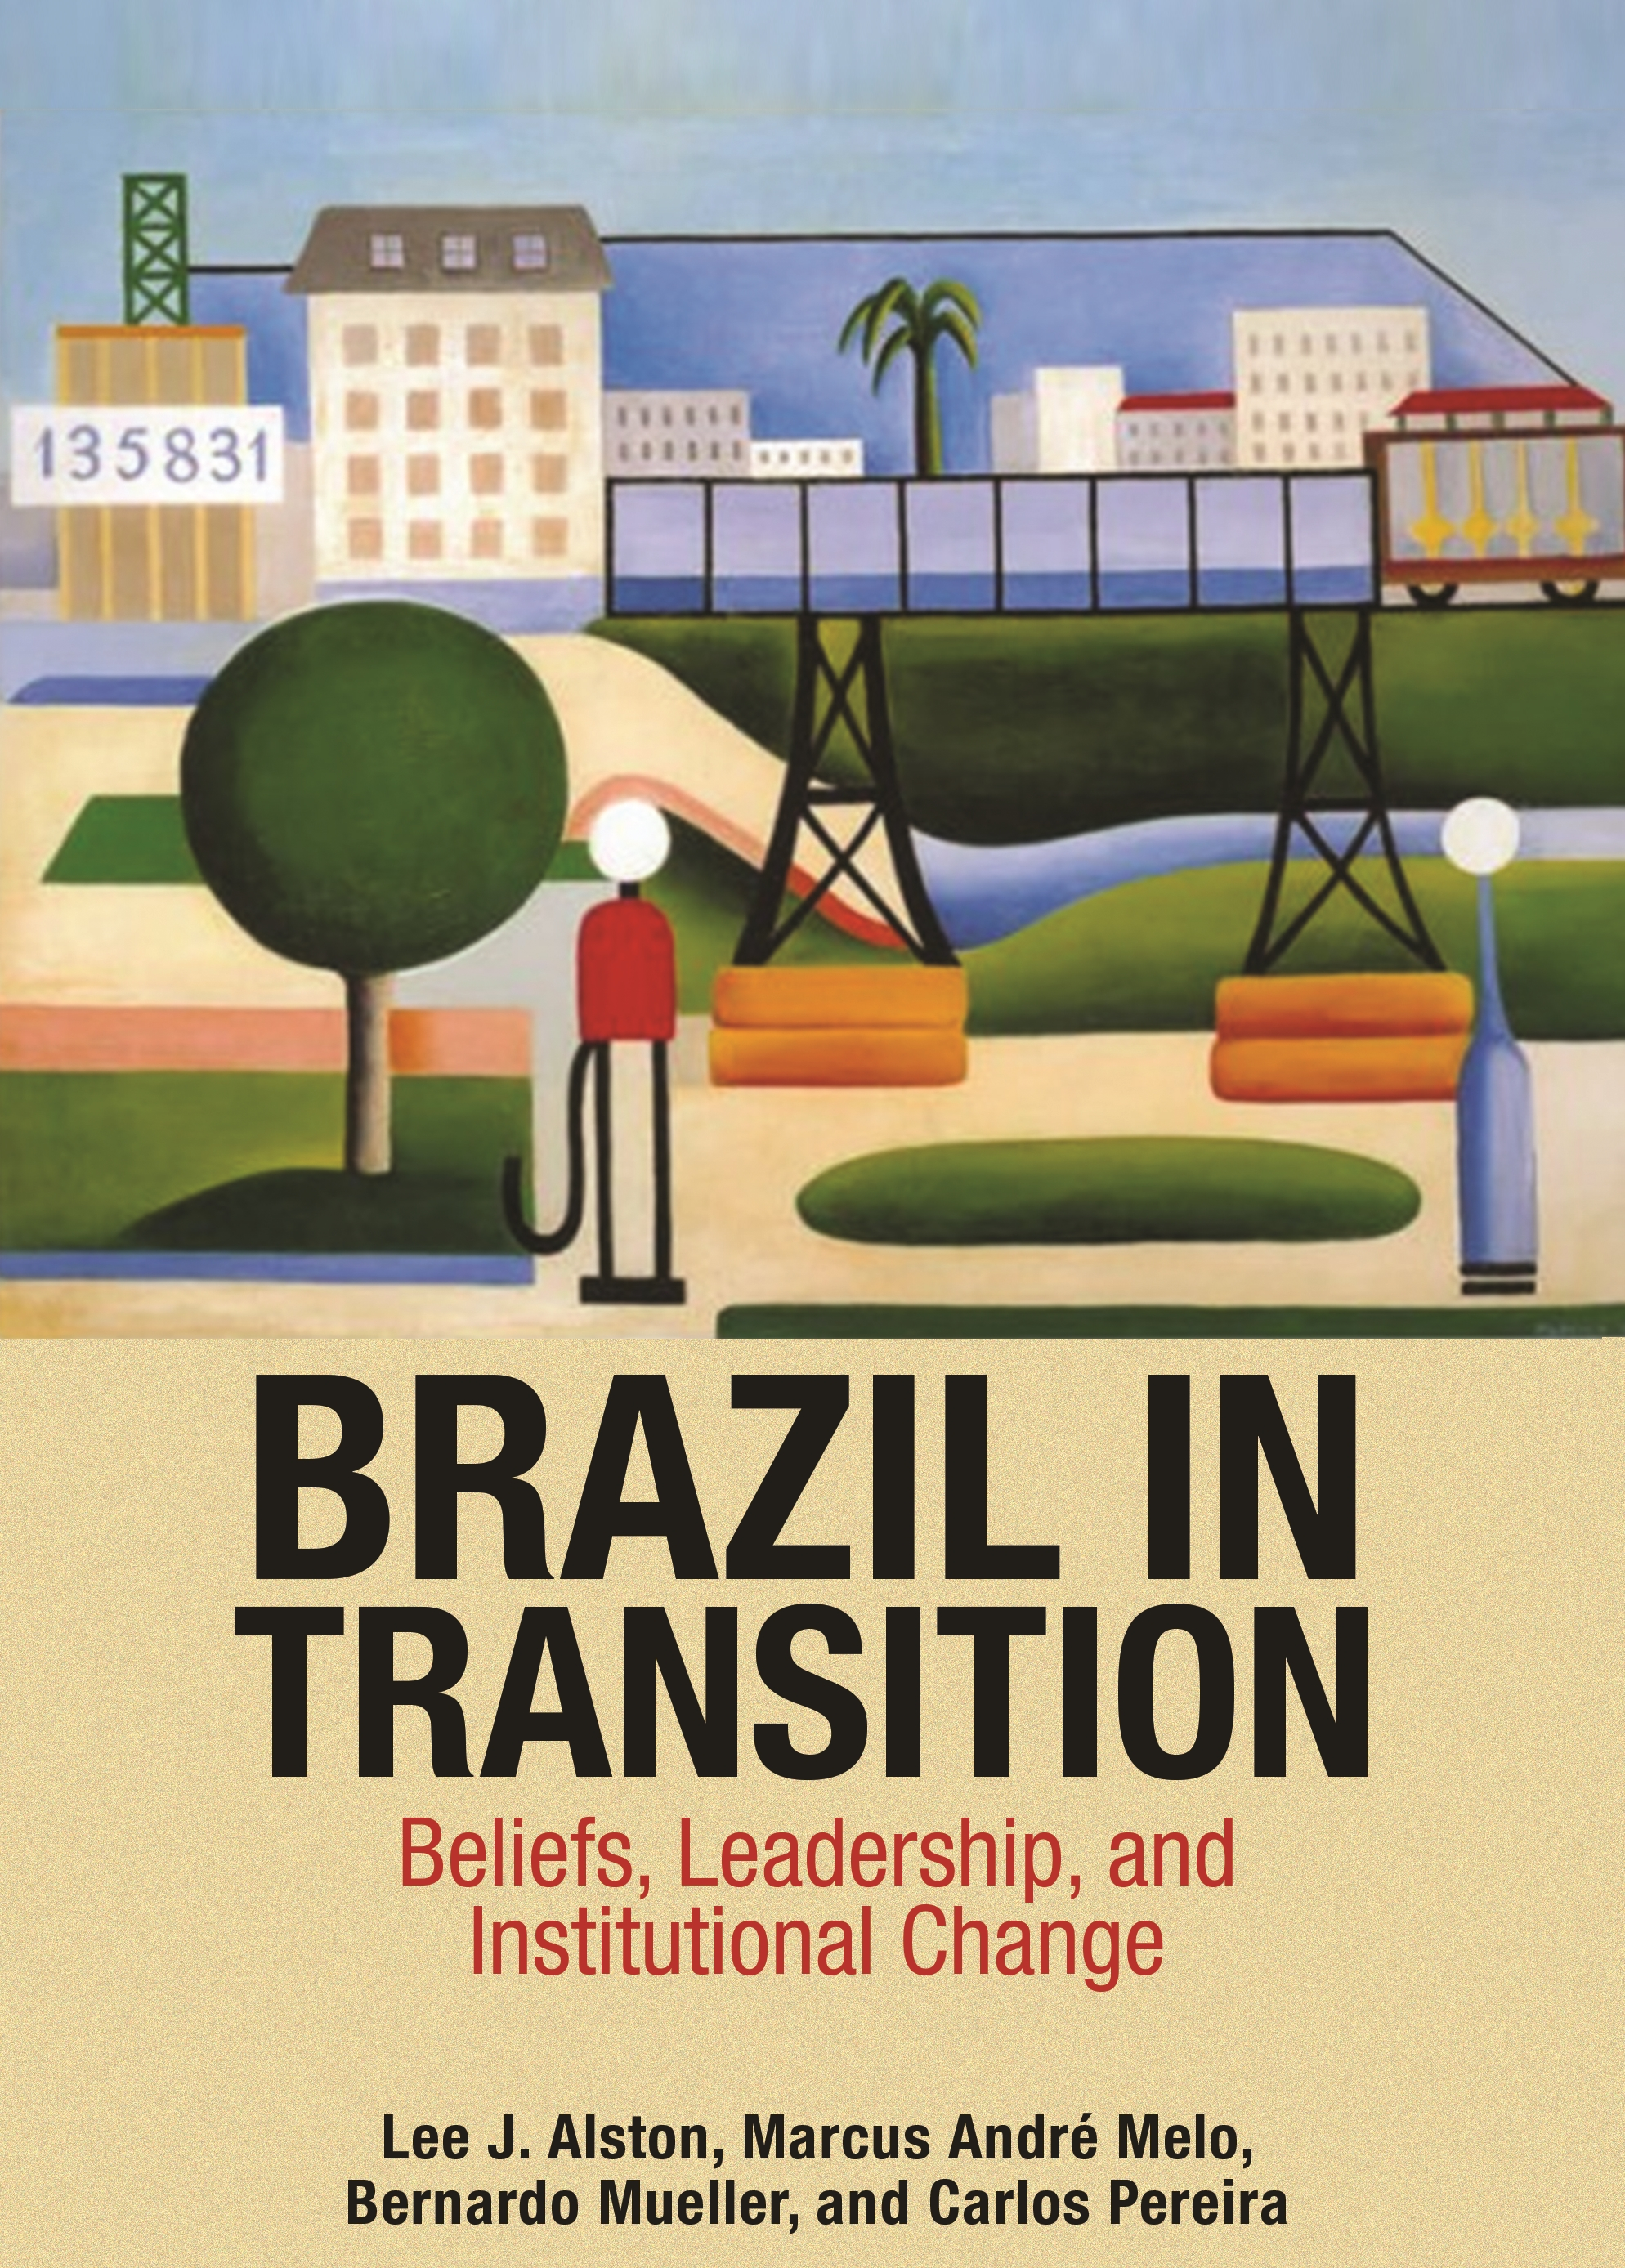 Download Ebook Brazil in Transition by Lee J. Alston Pdf